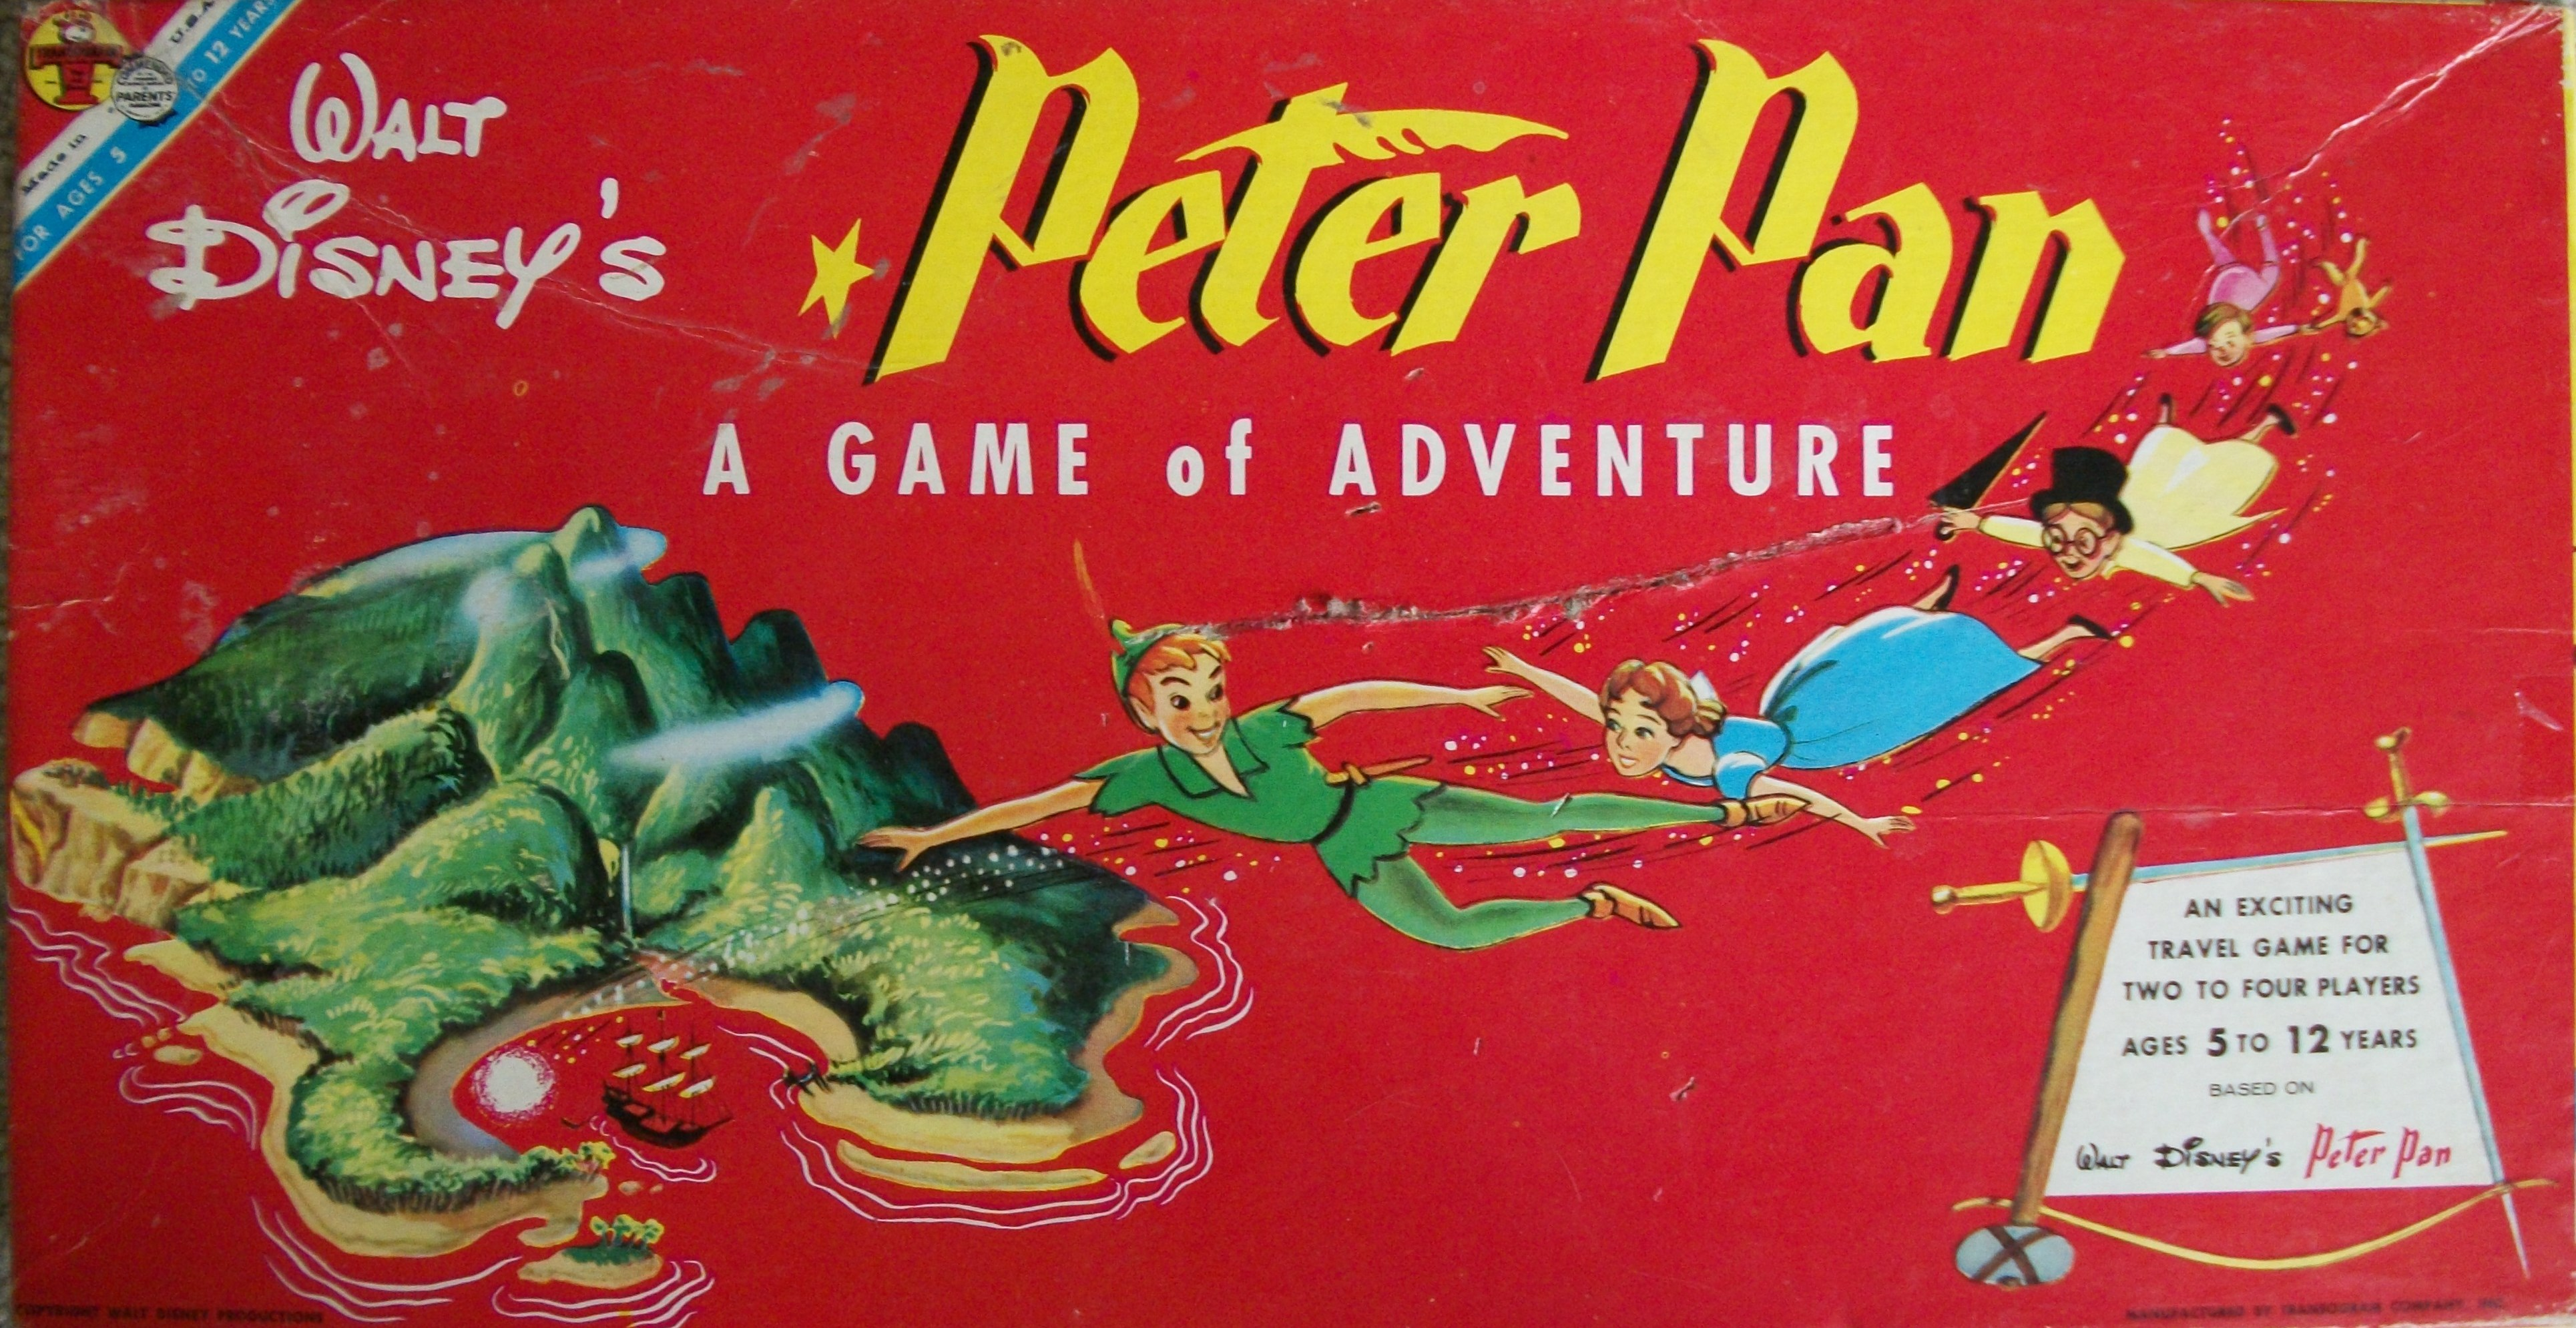 1953 vintage board game of Peter Pan